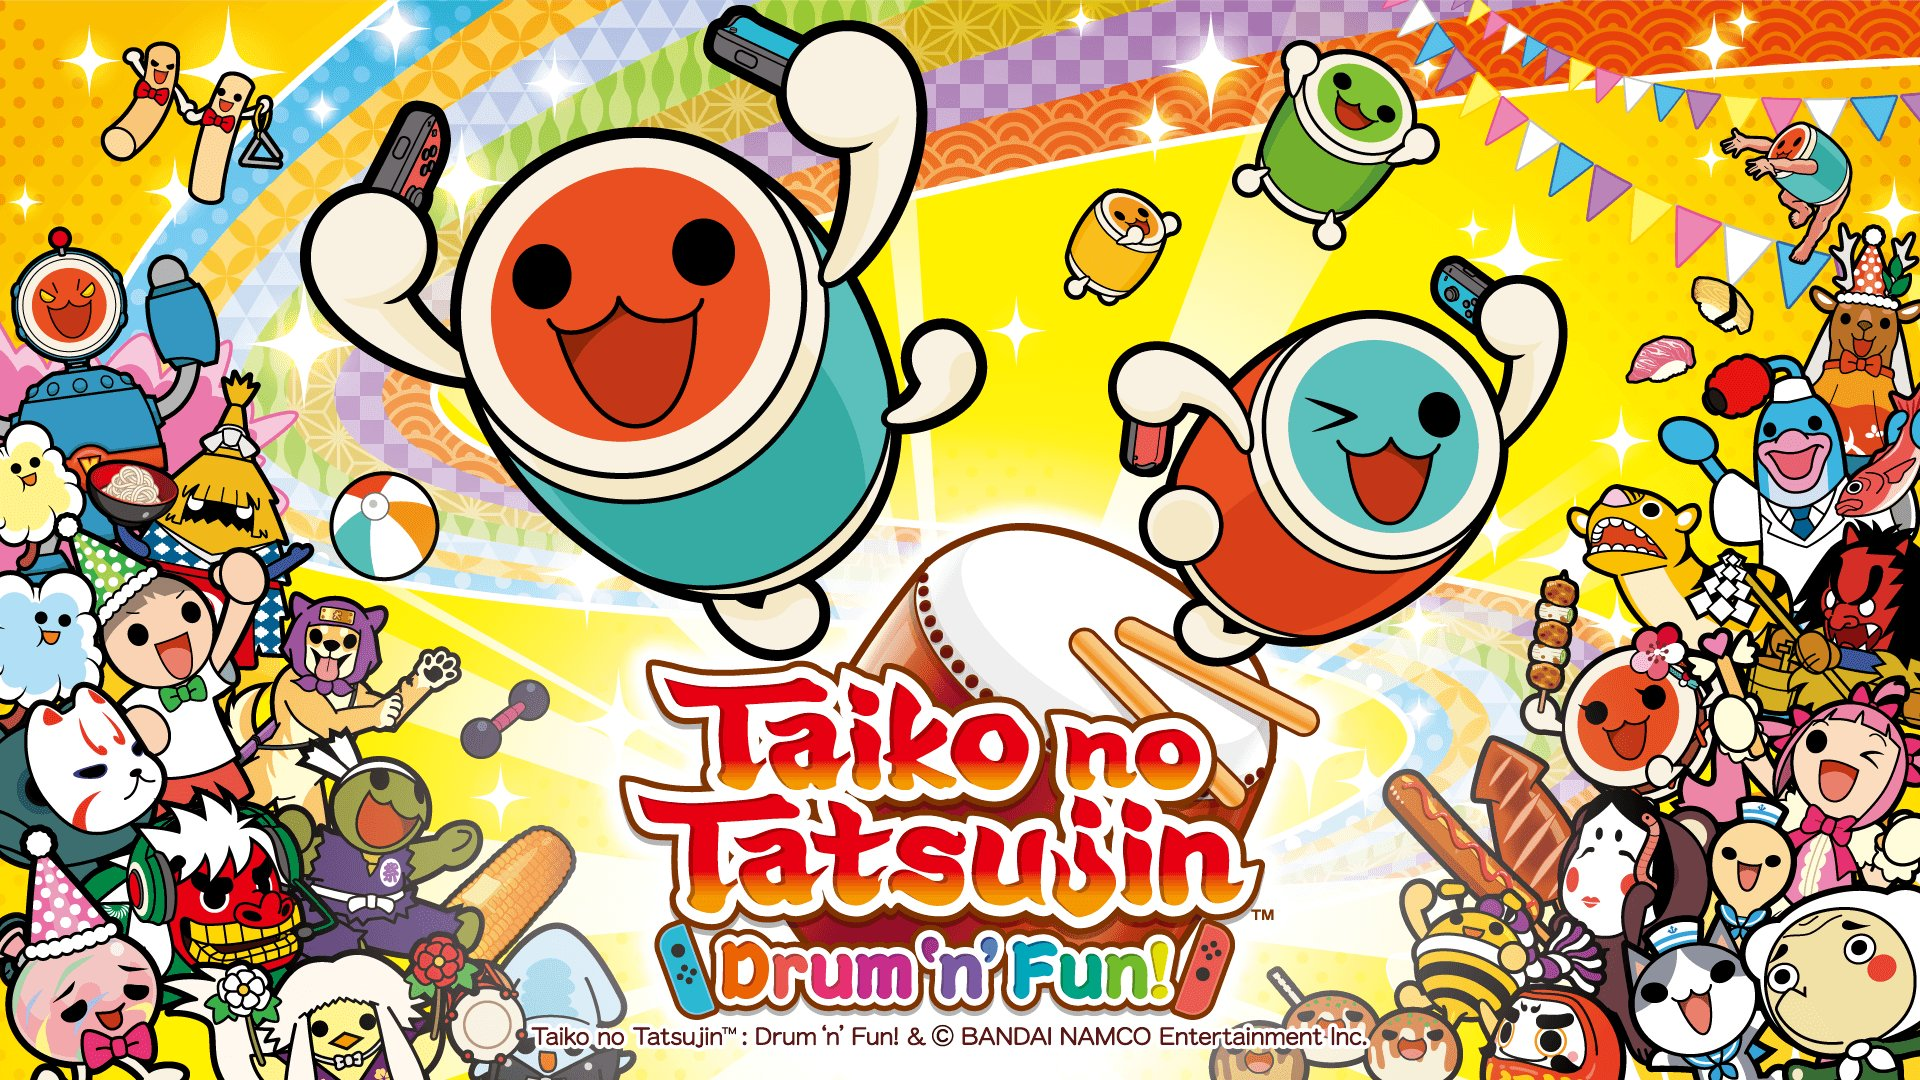 Taiko No Tatsujin para Play4 y Switch. ¿Sí o no llegan?